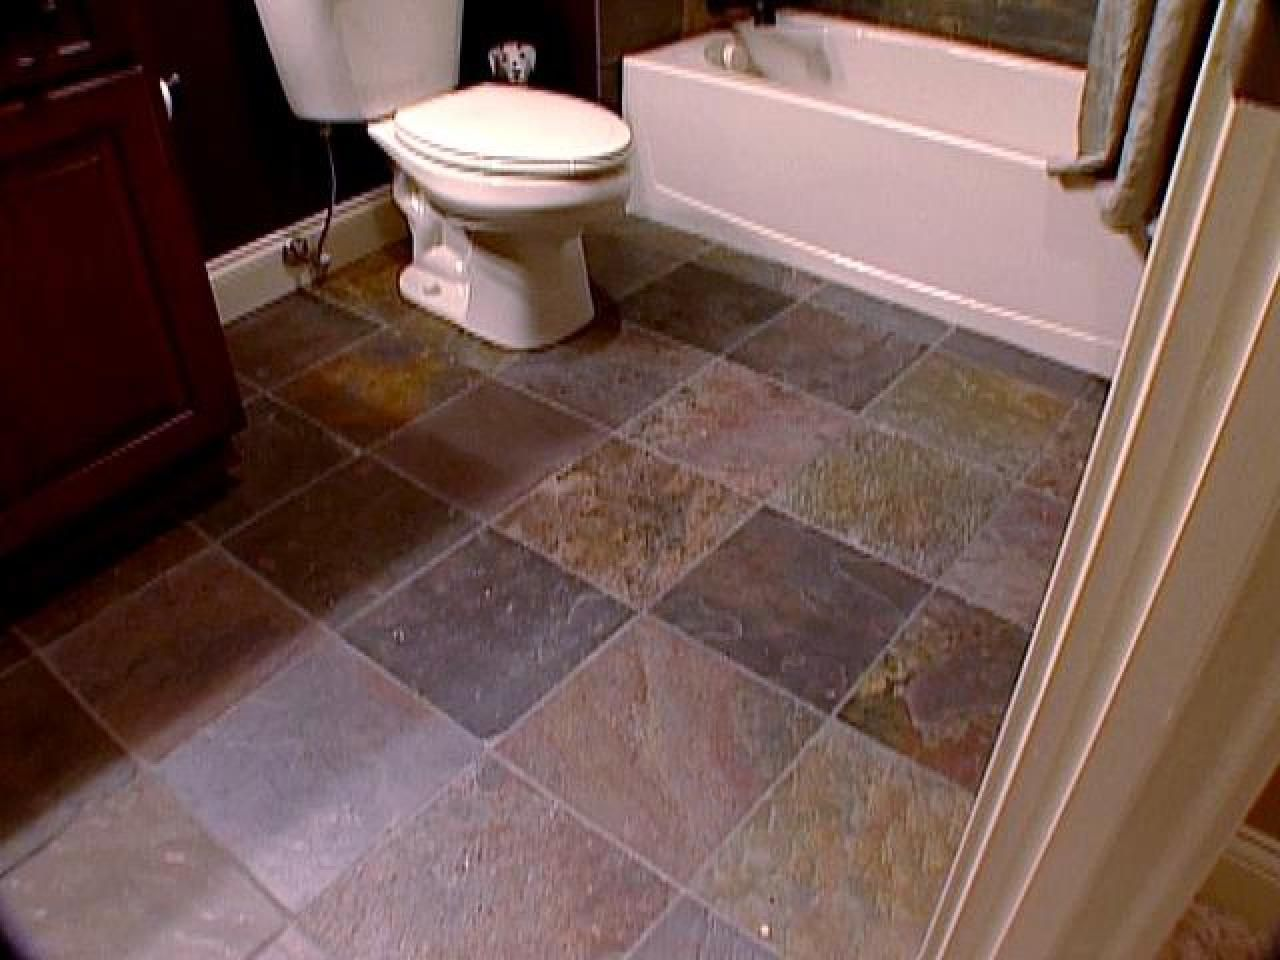 There Are Many Factors To Consider When Choosing A Flooring Type For Your Bathroom Our Expert Shares Advice On Options That Powder Room